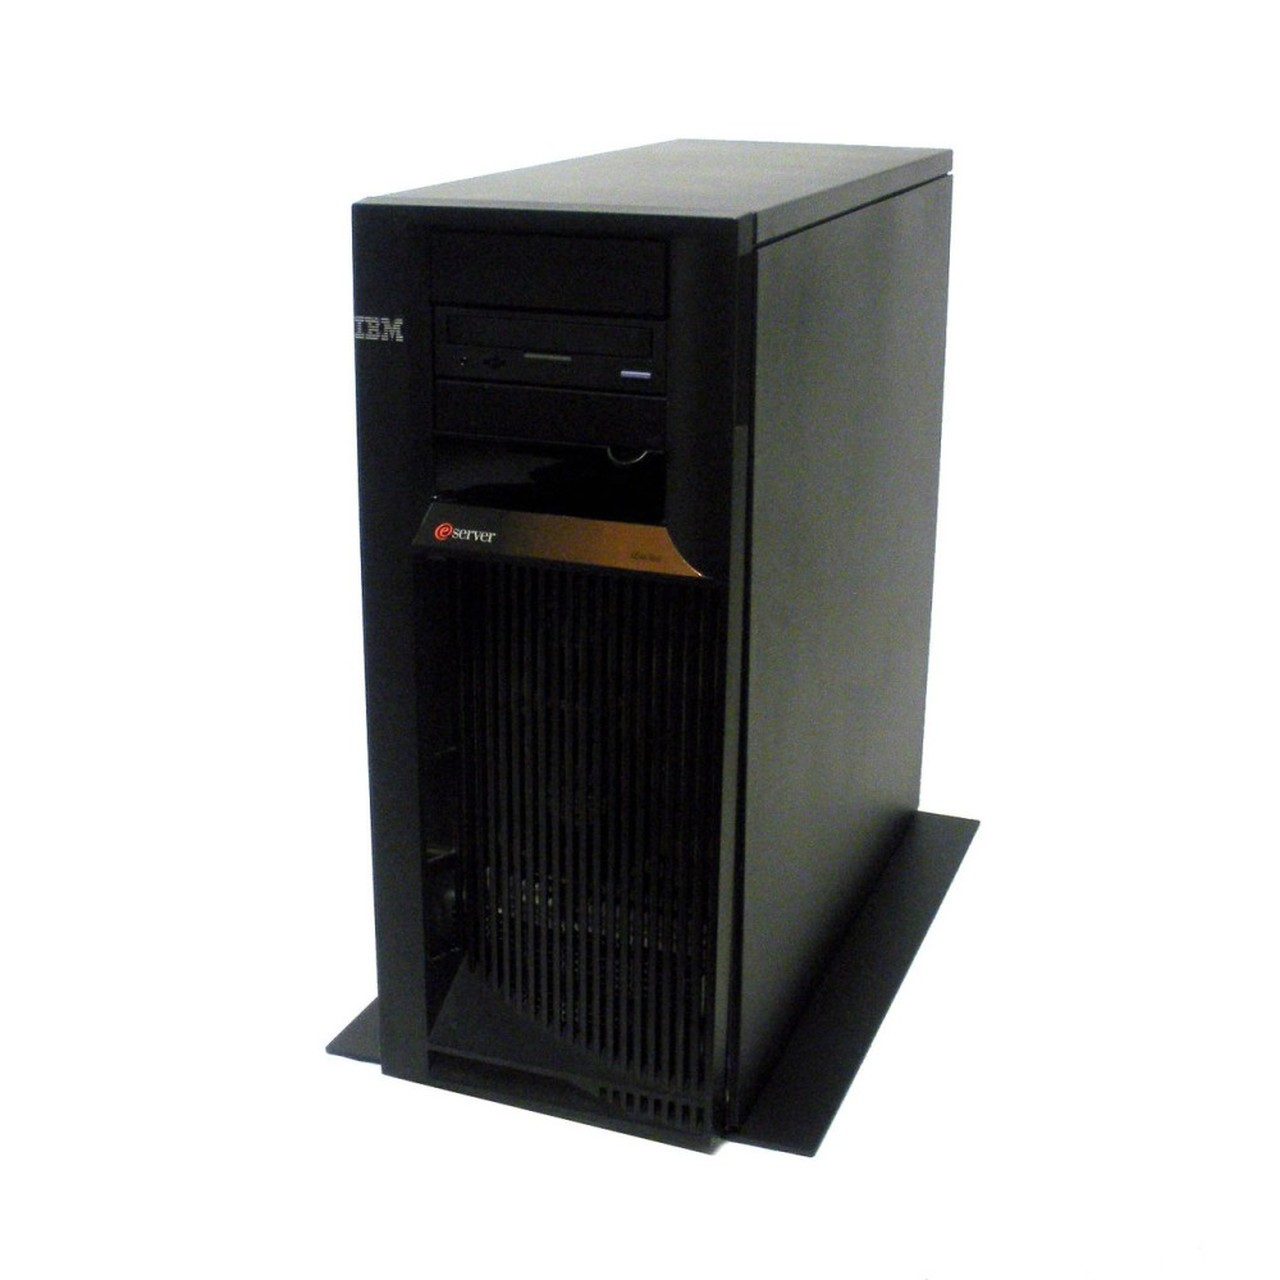 Buy & save on refurbished IBM AS/400 Servers from your trusted partners at Flagship Technologies.